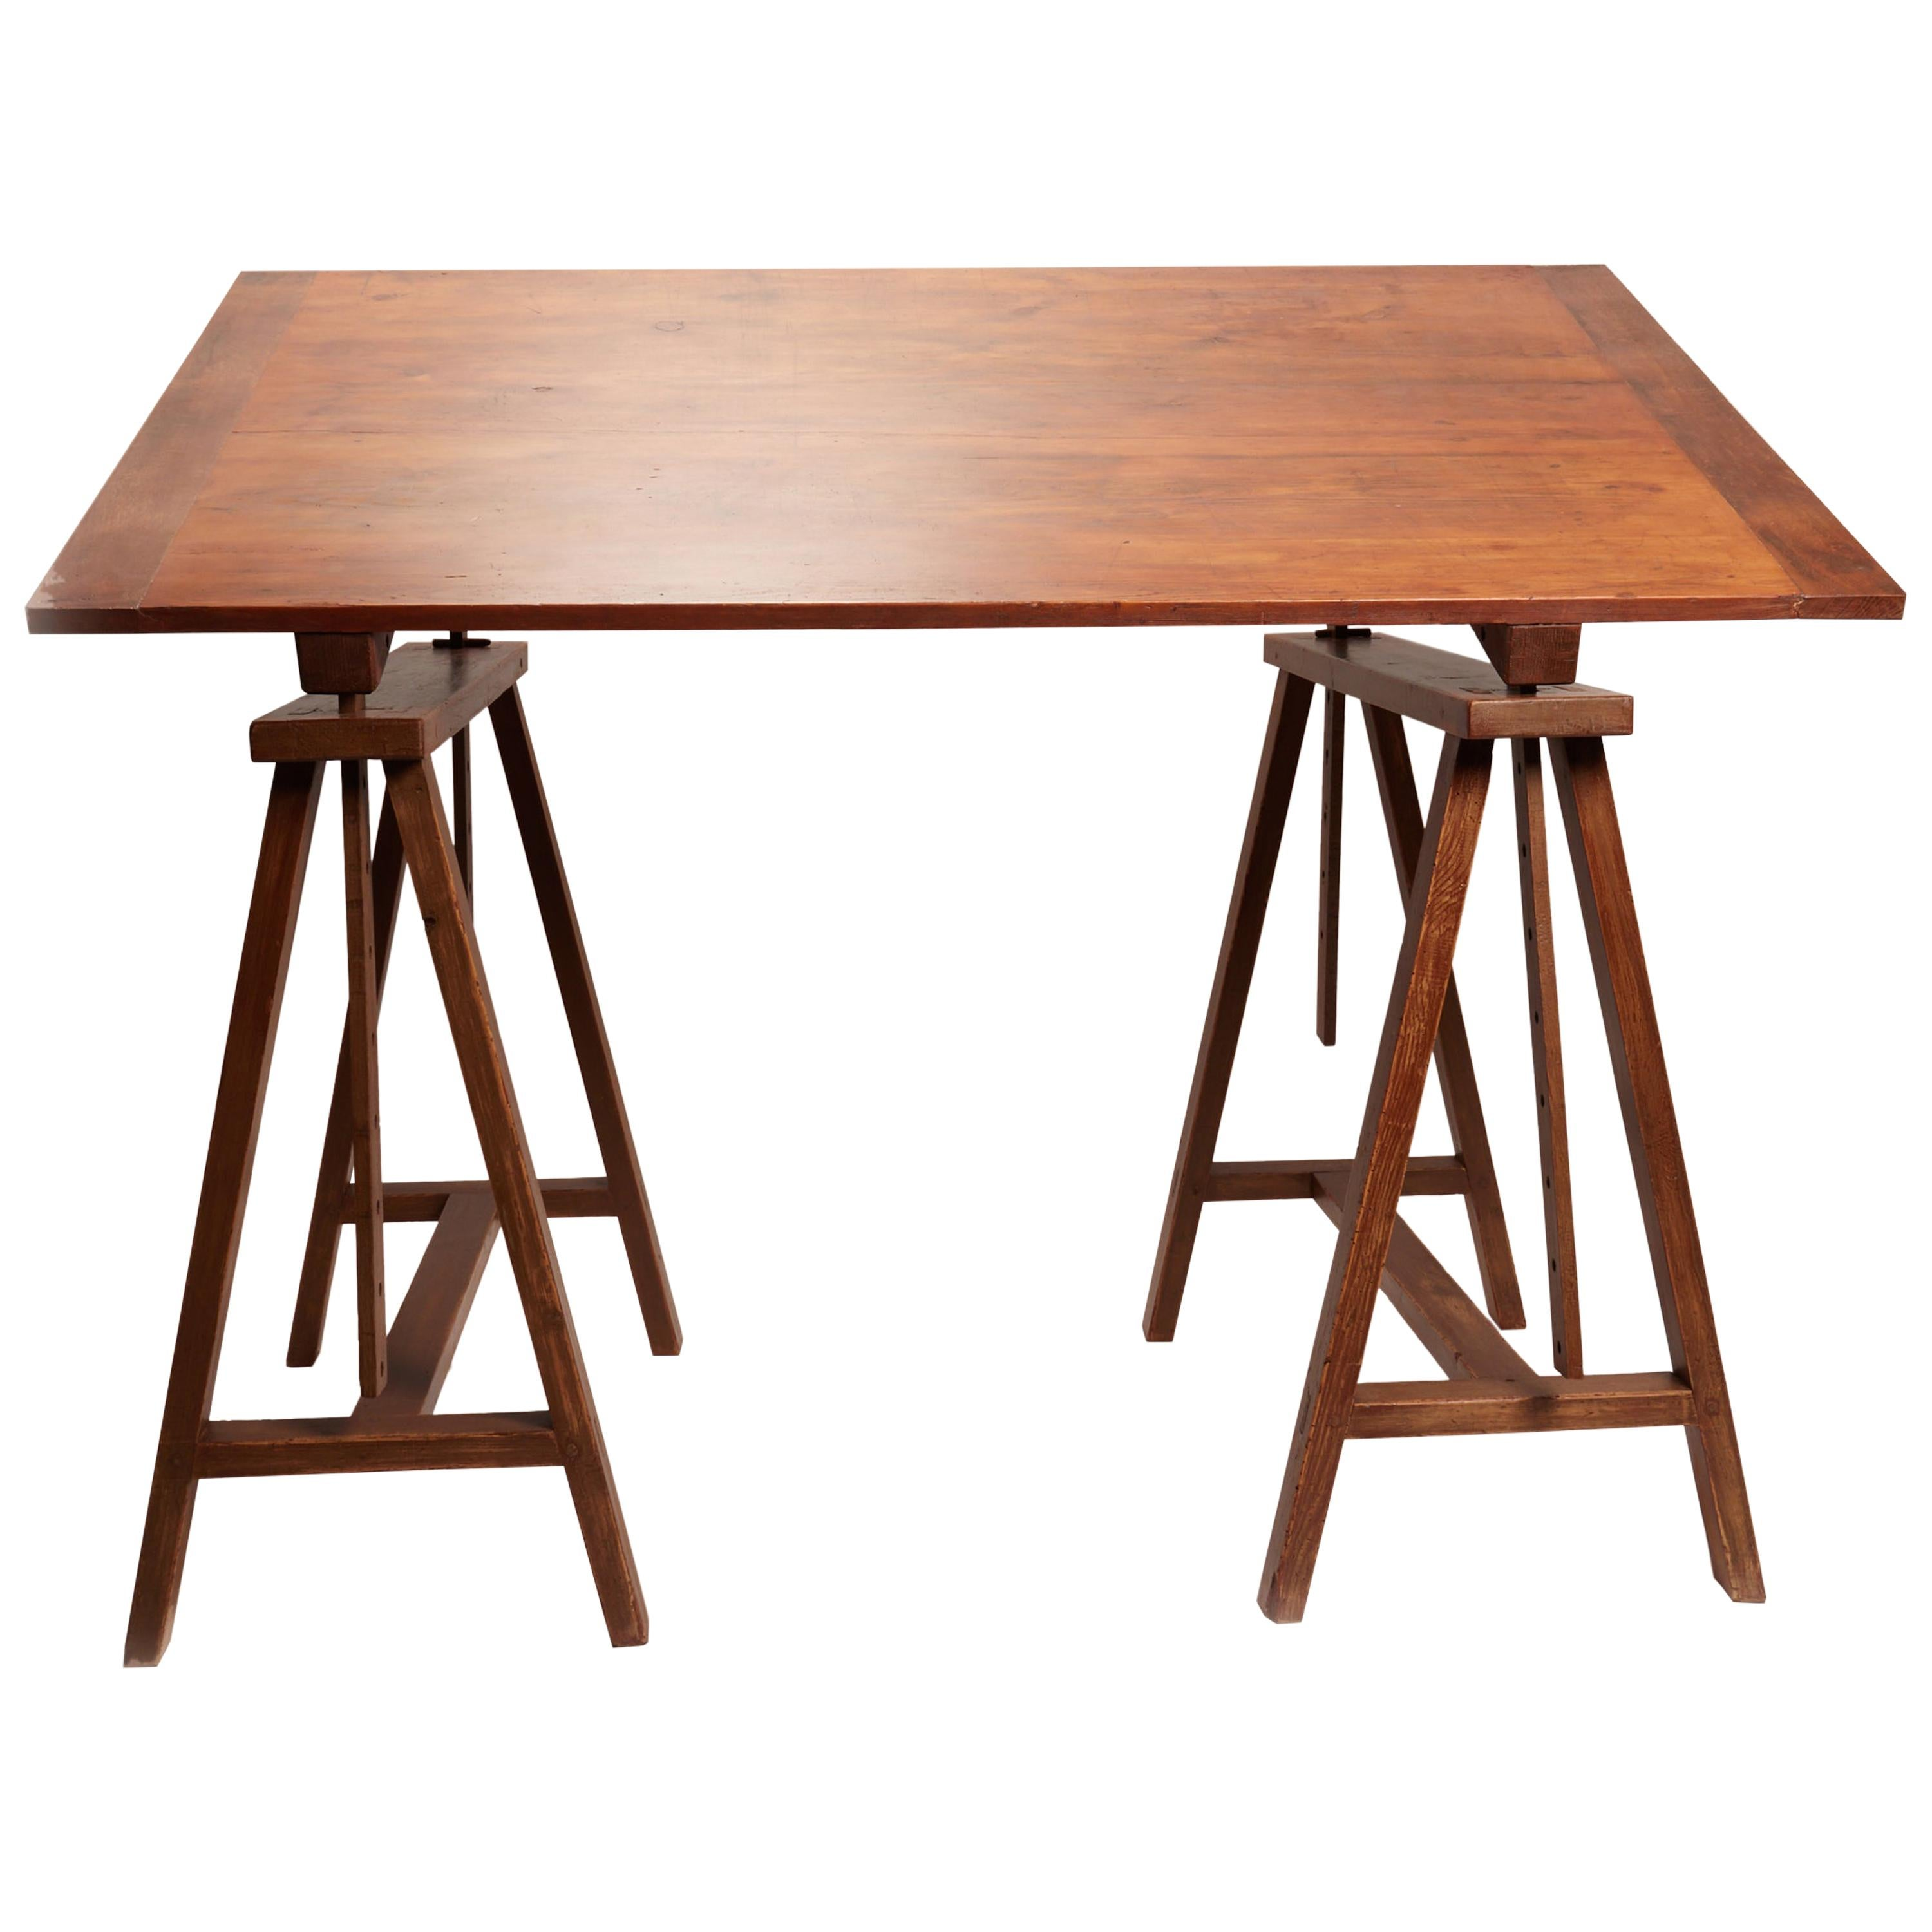 Unusual Early XX Century Wooden Drafting Machine Table